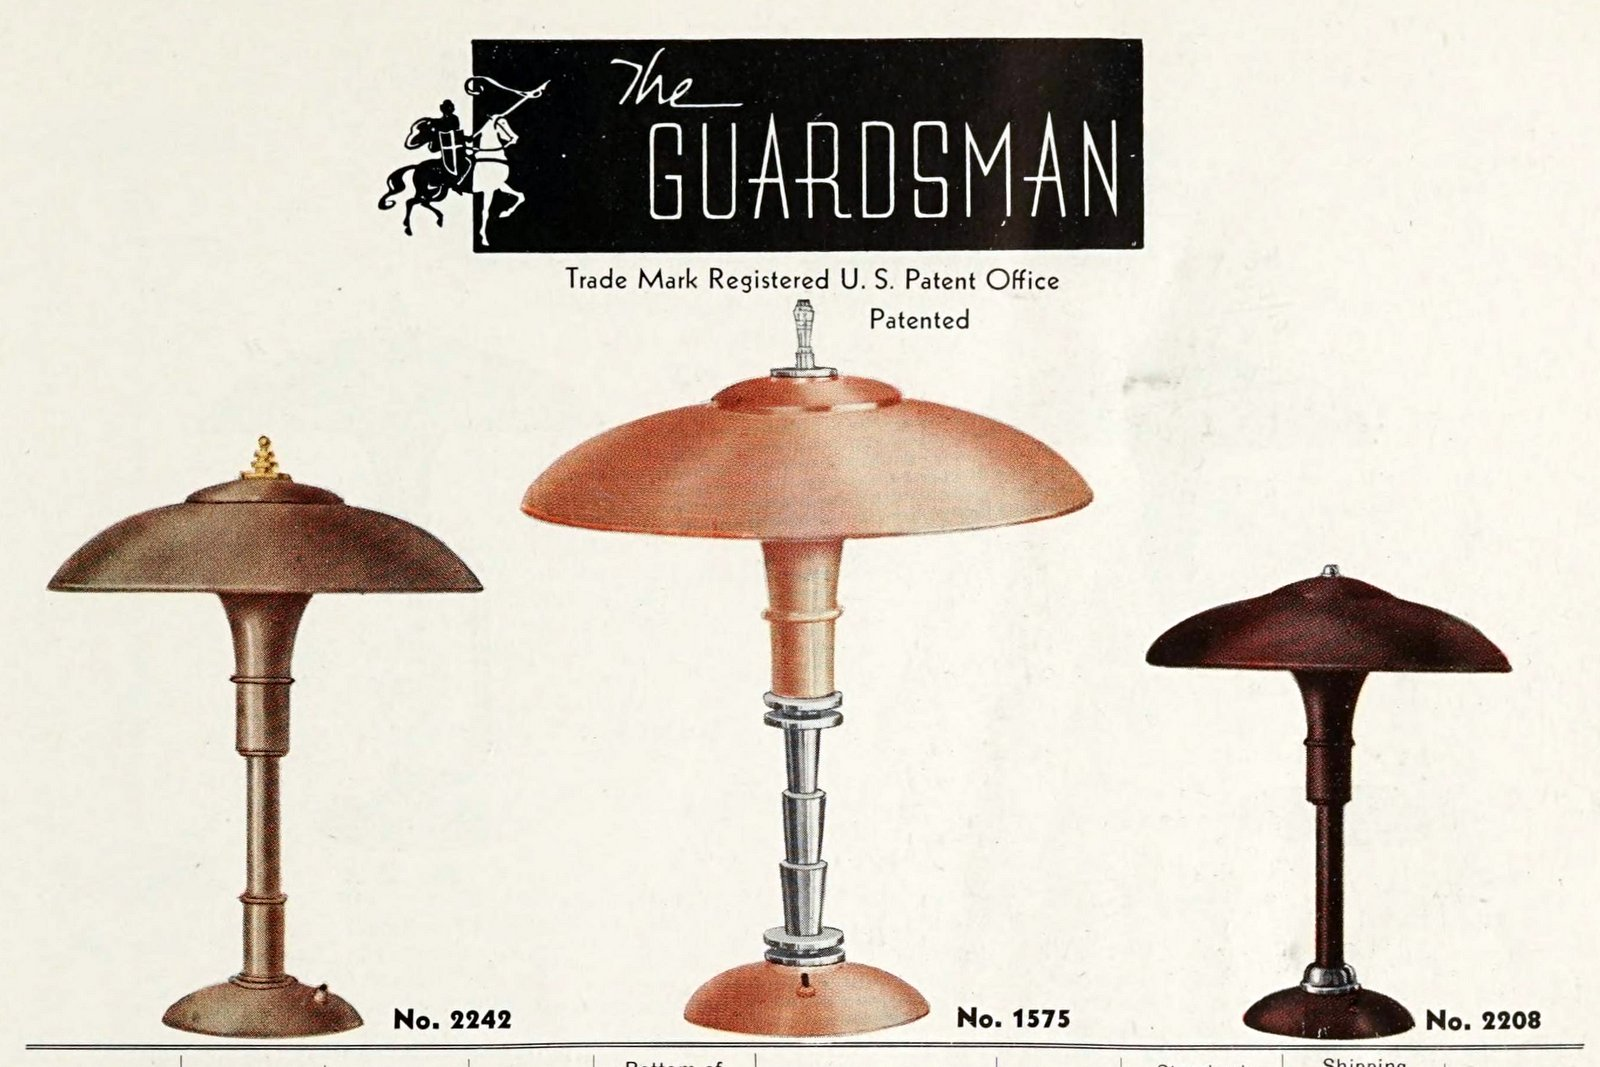 Vintage desk and table lamps by Guardsman (1939)